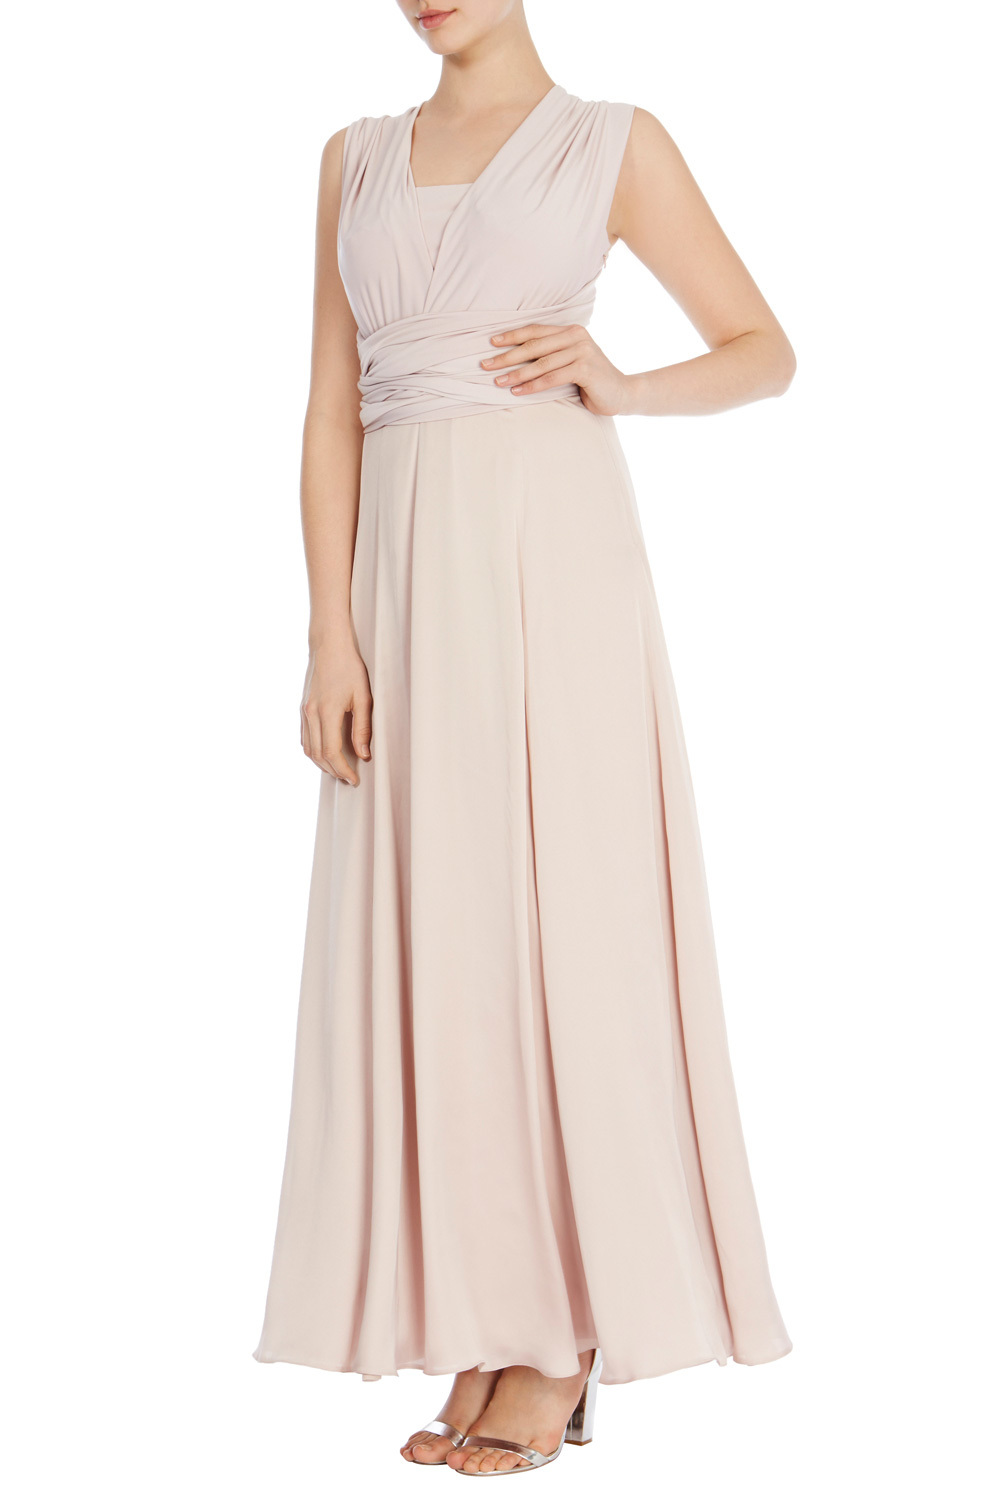 Corwin Woven Maxi Dress - neckline: v-neck; pattern: plain; sleeve style: sleeveless; style: maxi dress; length: ankle length; predominant colour: blush; occasions: evening; fit: body skimming; fibres: polyester/polyamide - 100%; sleeve length: sleeveless; pattern type: fabric; texture group: jersey - stretchy/drapey; season: s/s 2016; wardrobe: event